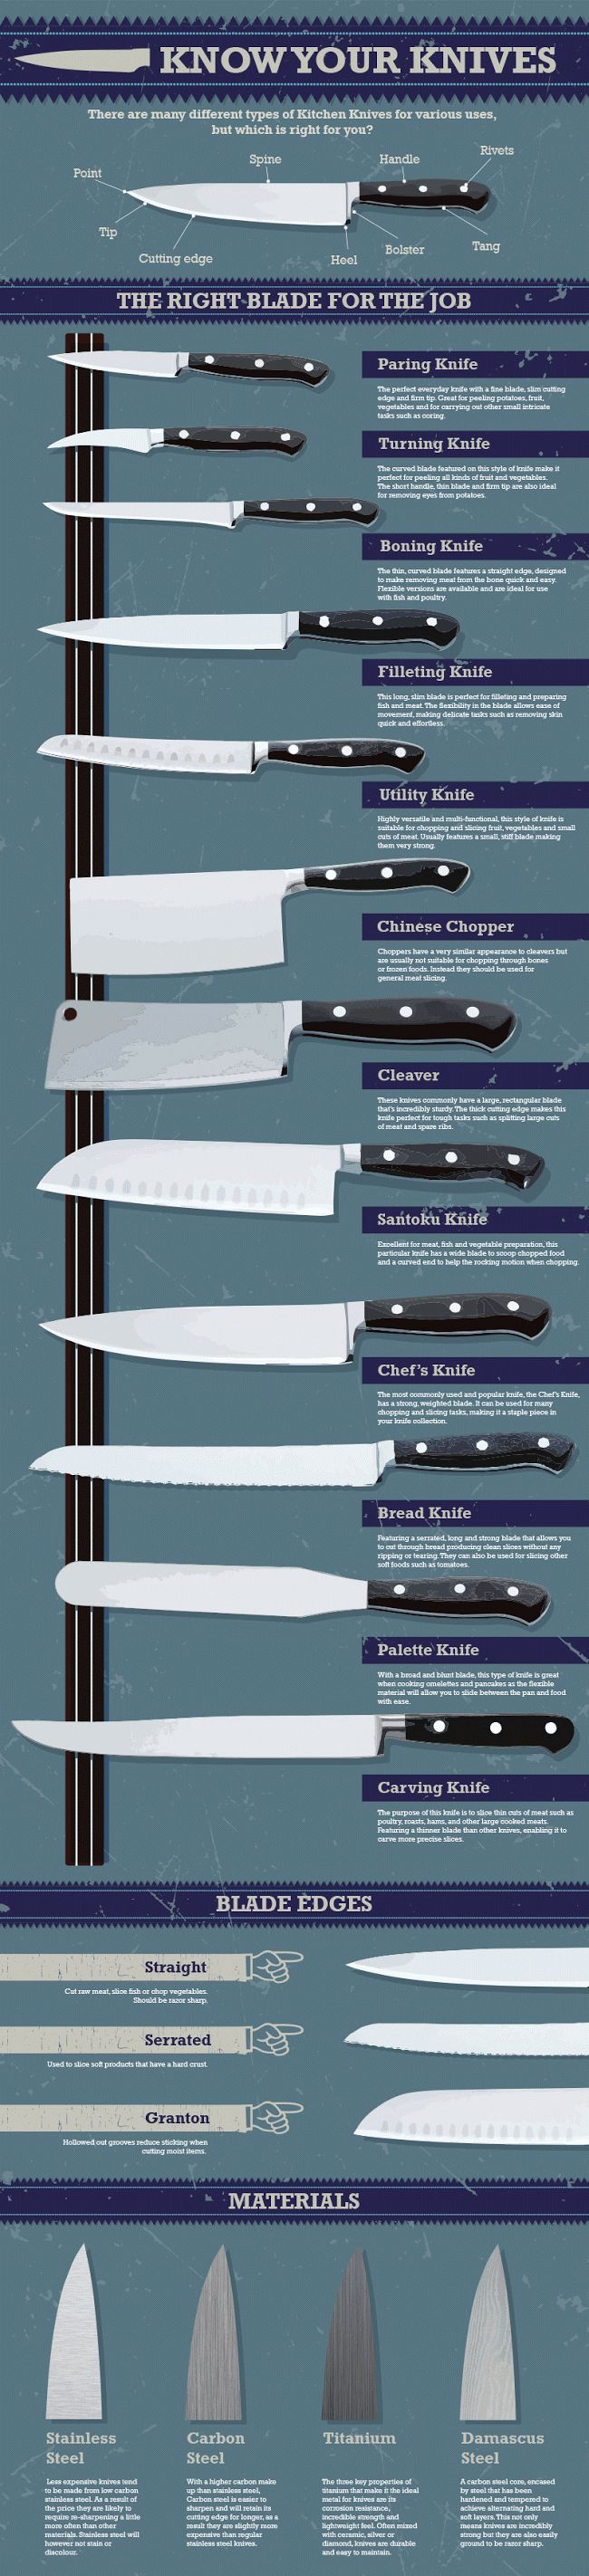 251 best Knives images on Pinterest | Knife making, Chef knives and ...